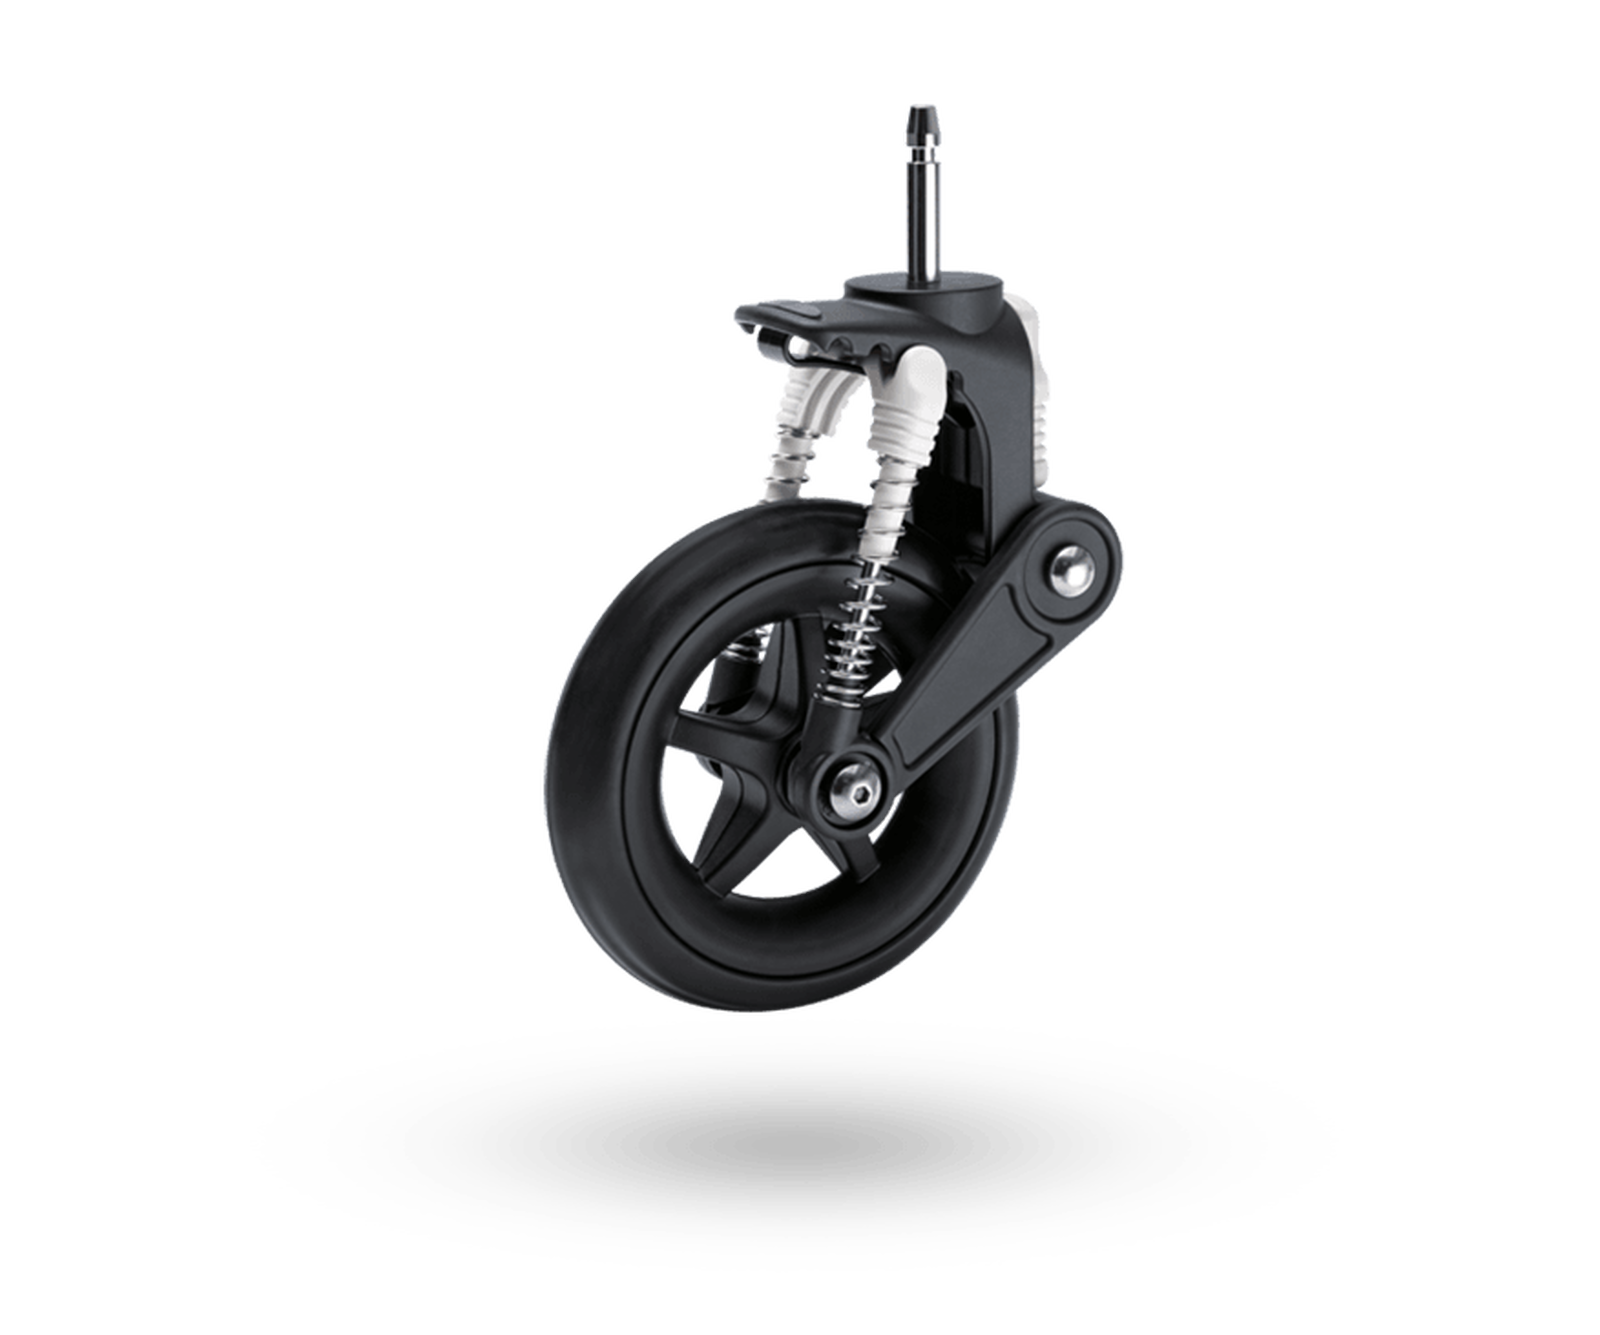 Bugaboo Cameleon3 front swivel wheel (foam)